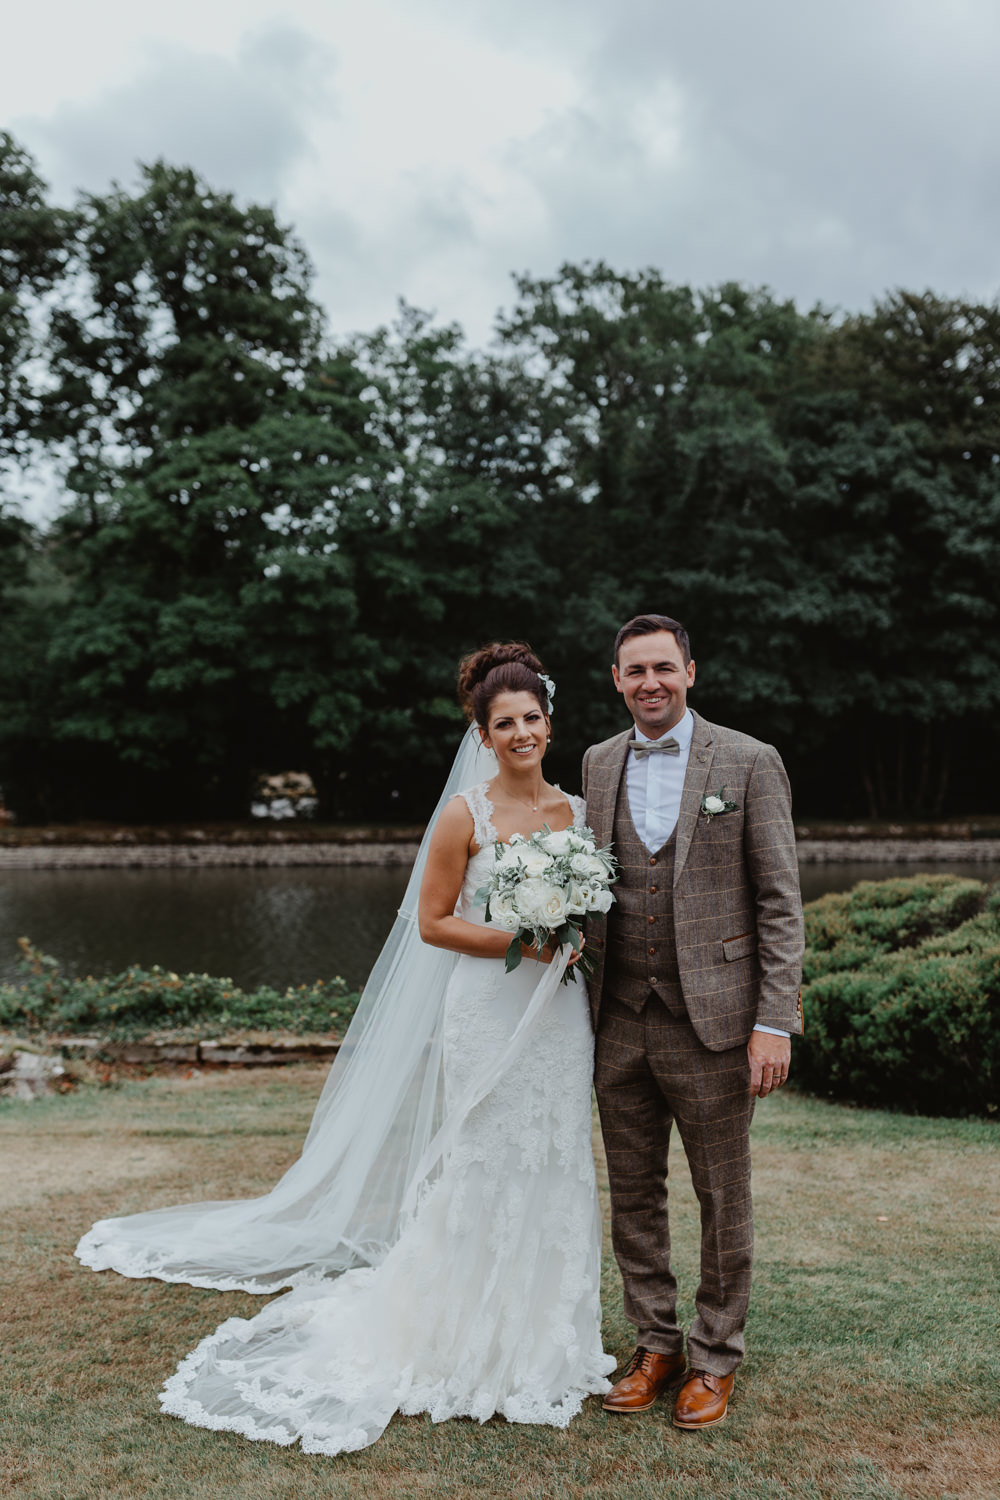 Bride Bridal Lace Overlay Straps Veil Tweed Three Piece Suit Waistcoat Groom Hobbit Hill Wedding Stevie Jay Photography